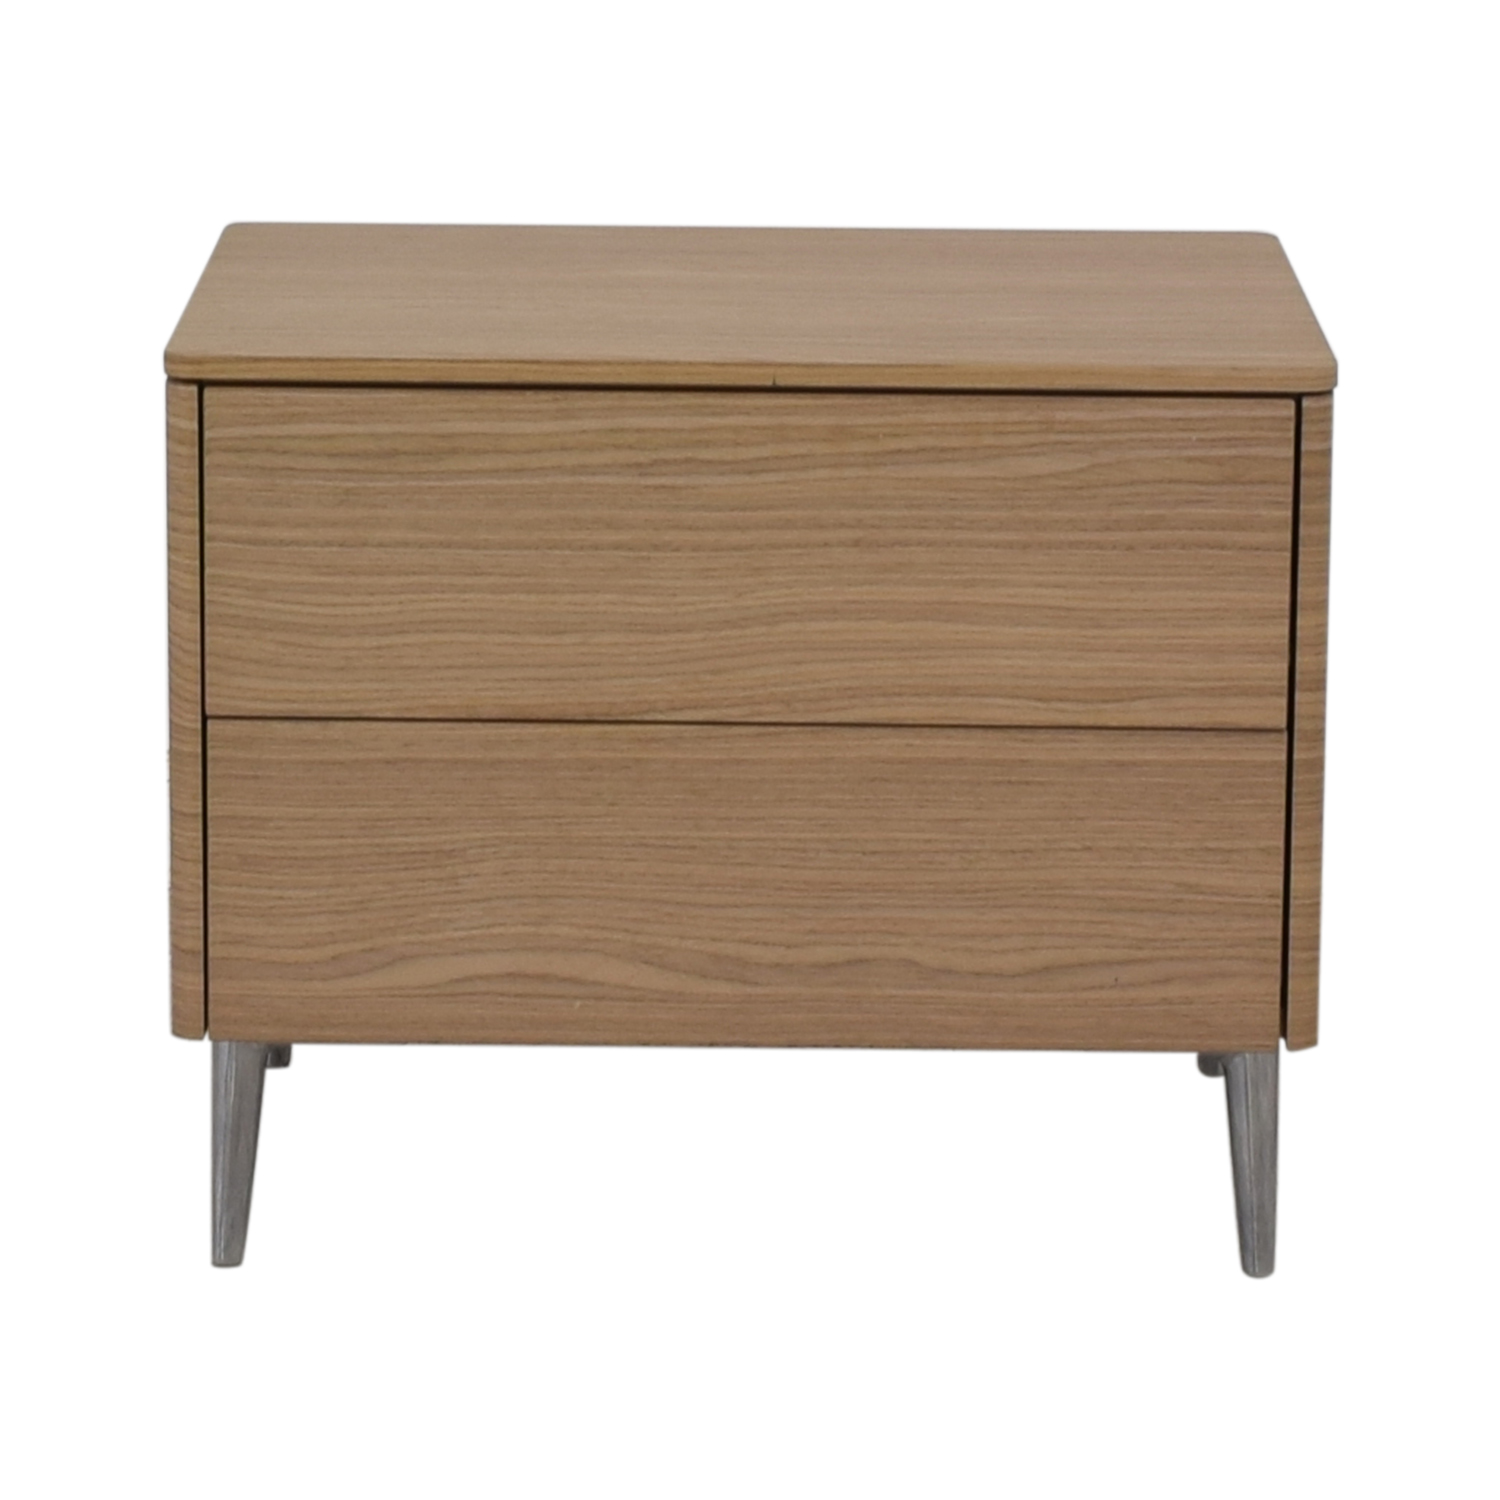 Calligaris Calligaris Boston Two Drawer Nightstand on sale